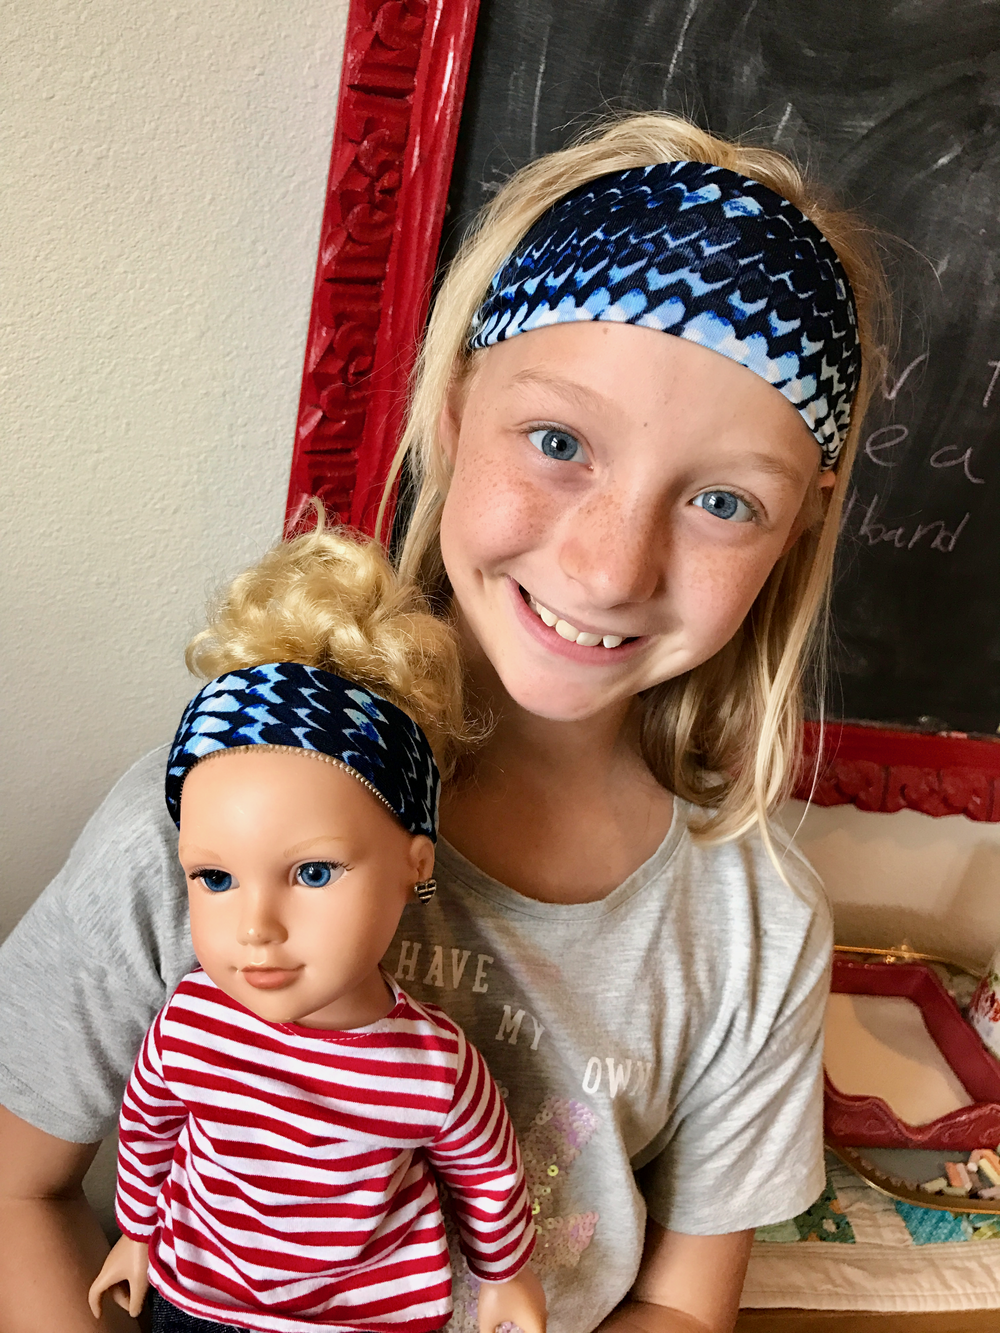 How to Sew a Soft Headband